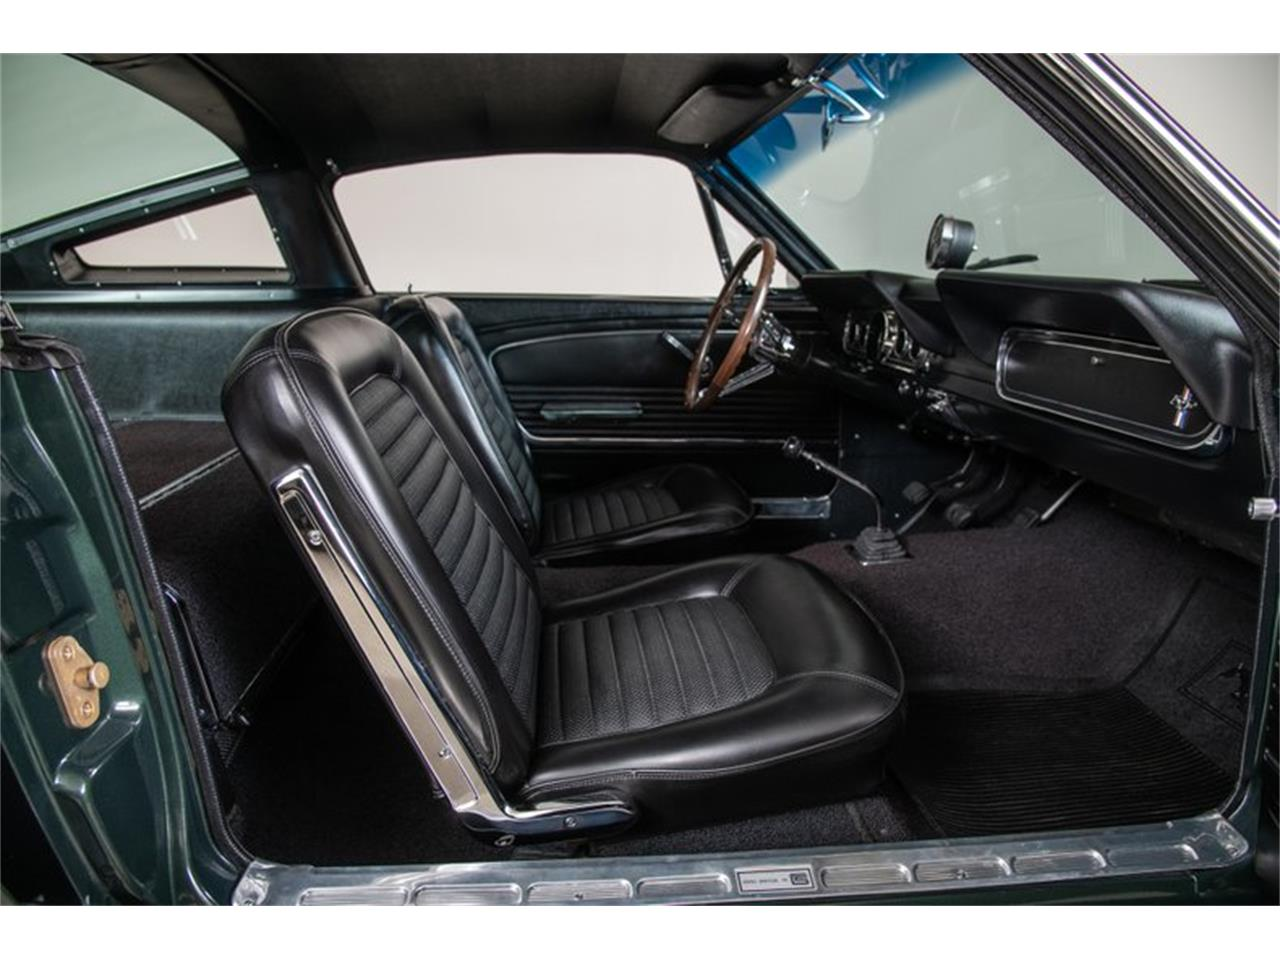 Large Picture of Classic '66 GT350 located in California Auction Vehicle - QKPF